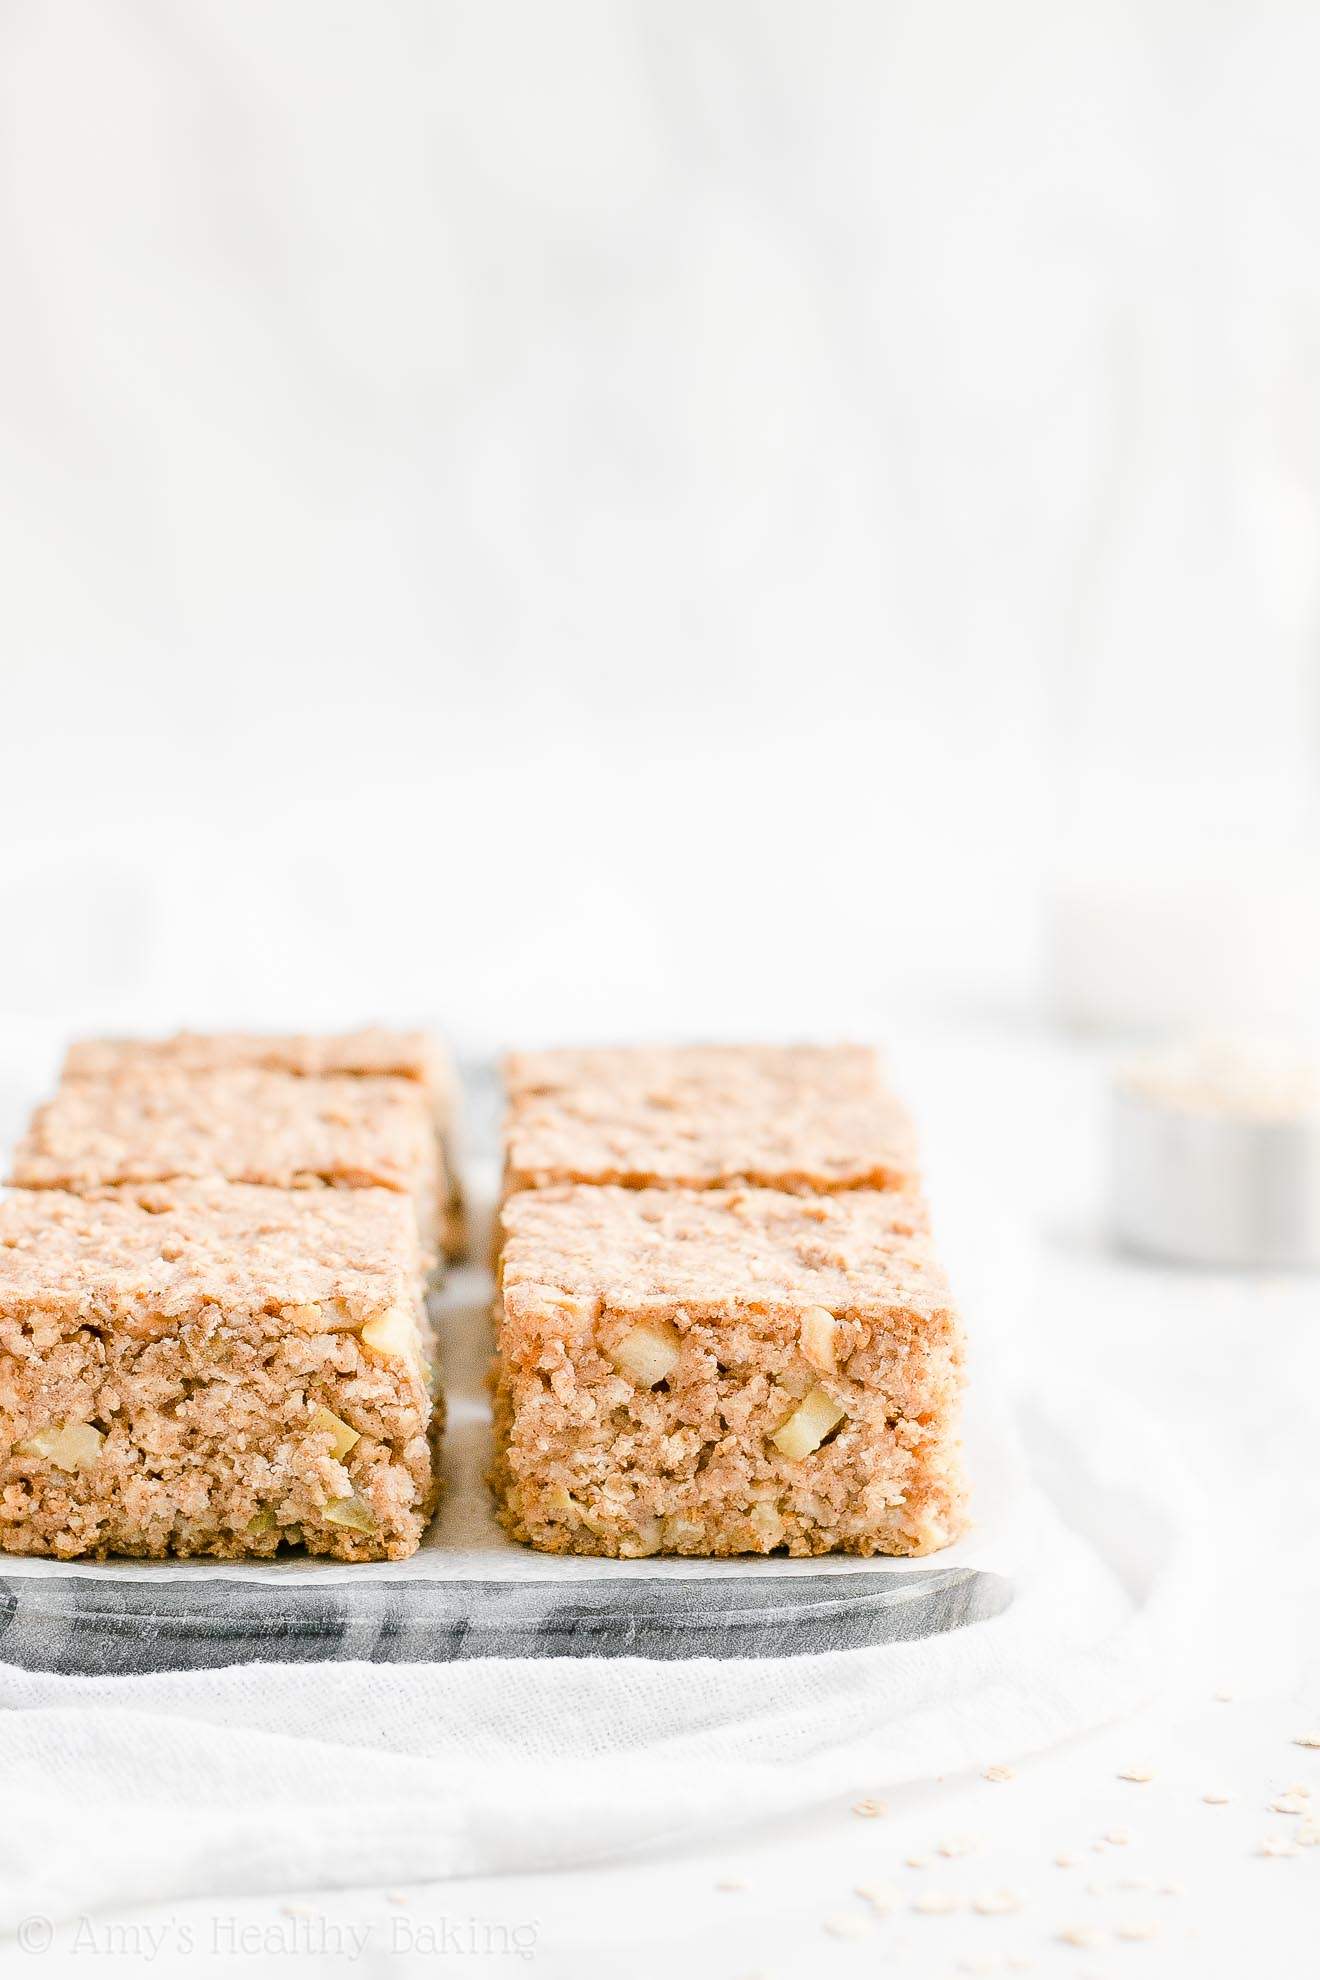 100-Calorie Healthy Greek Yogurt Cinnamon Apple Oatmeal Snack Cake